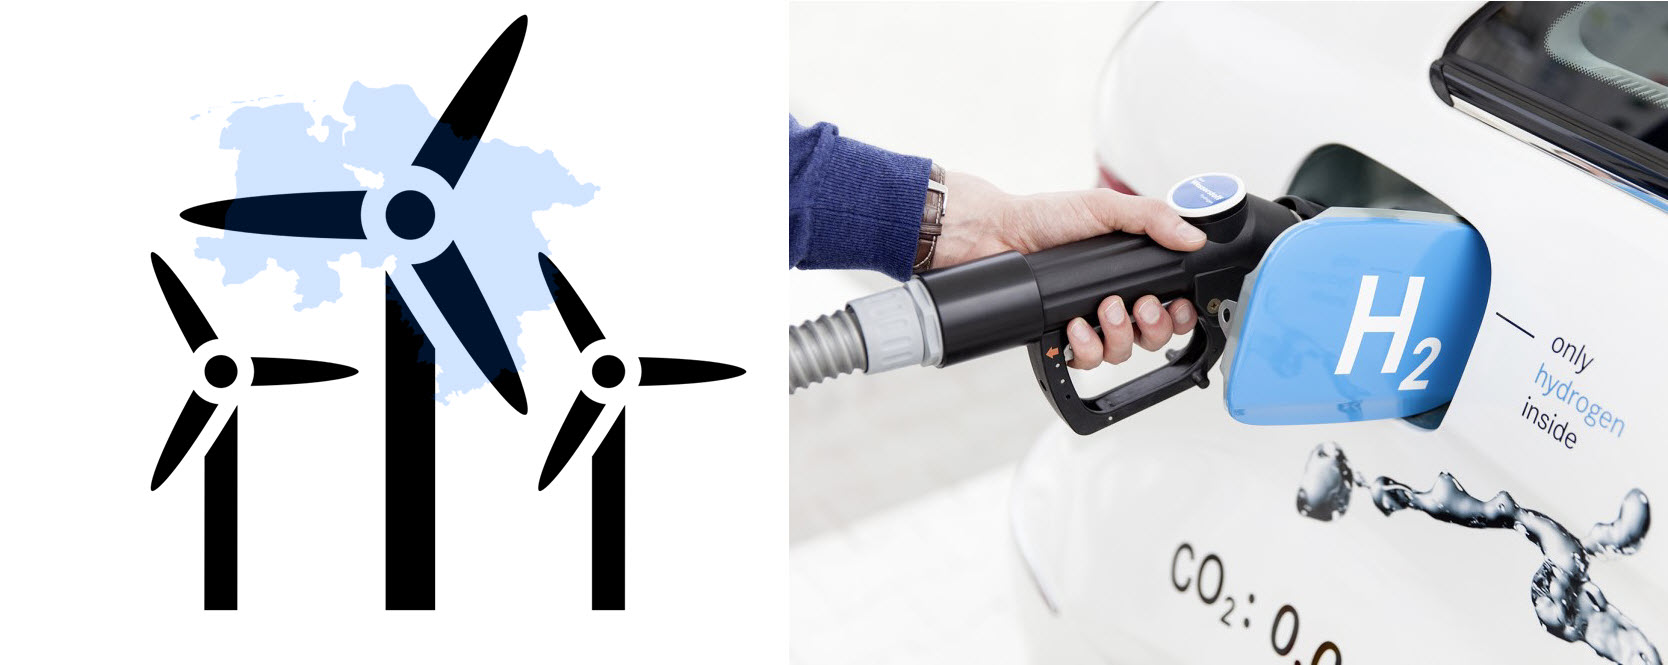 hydrogen fueling station H2 MOBILITY with Wind